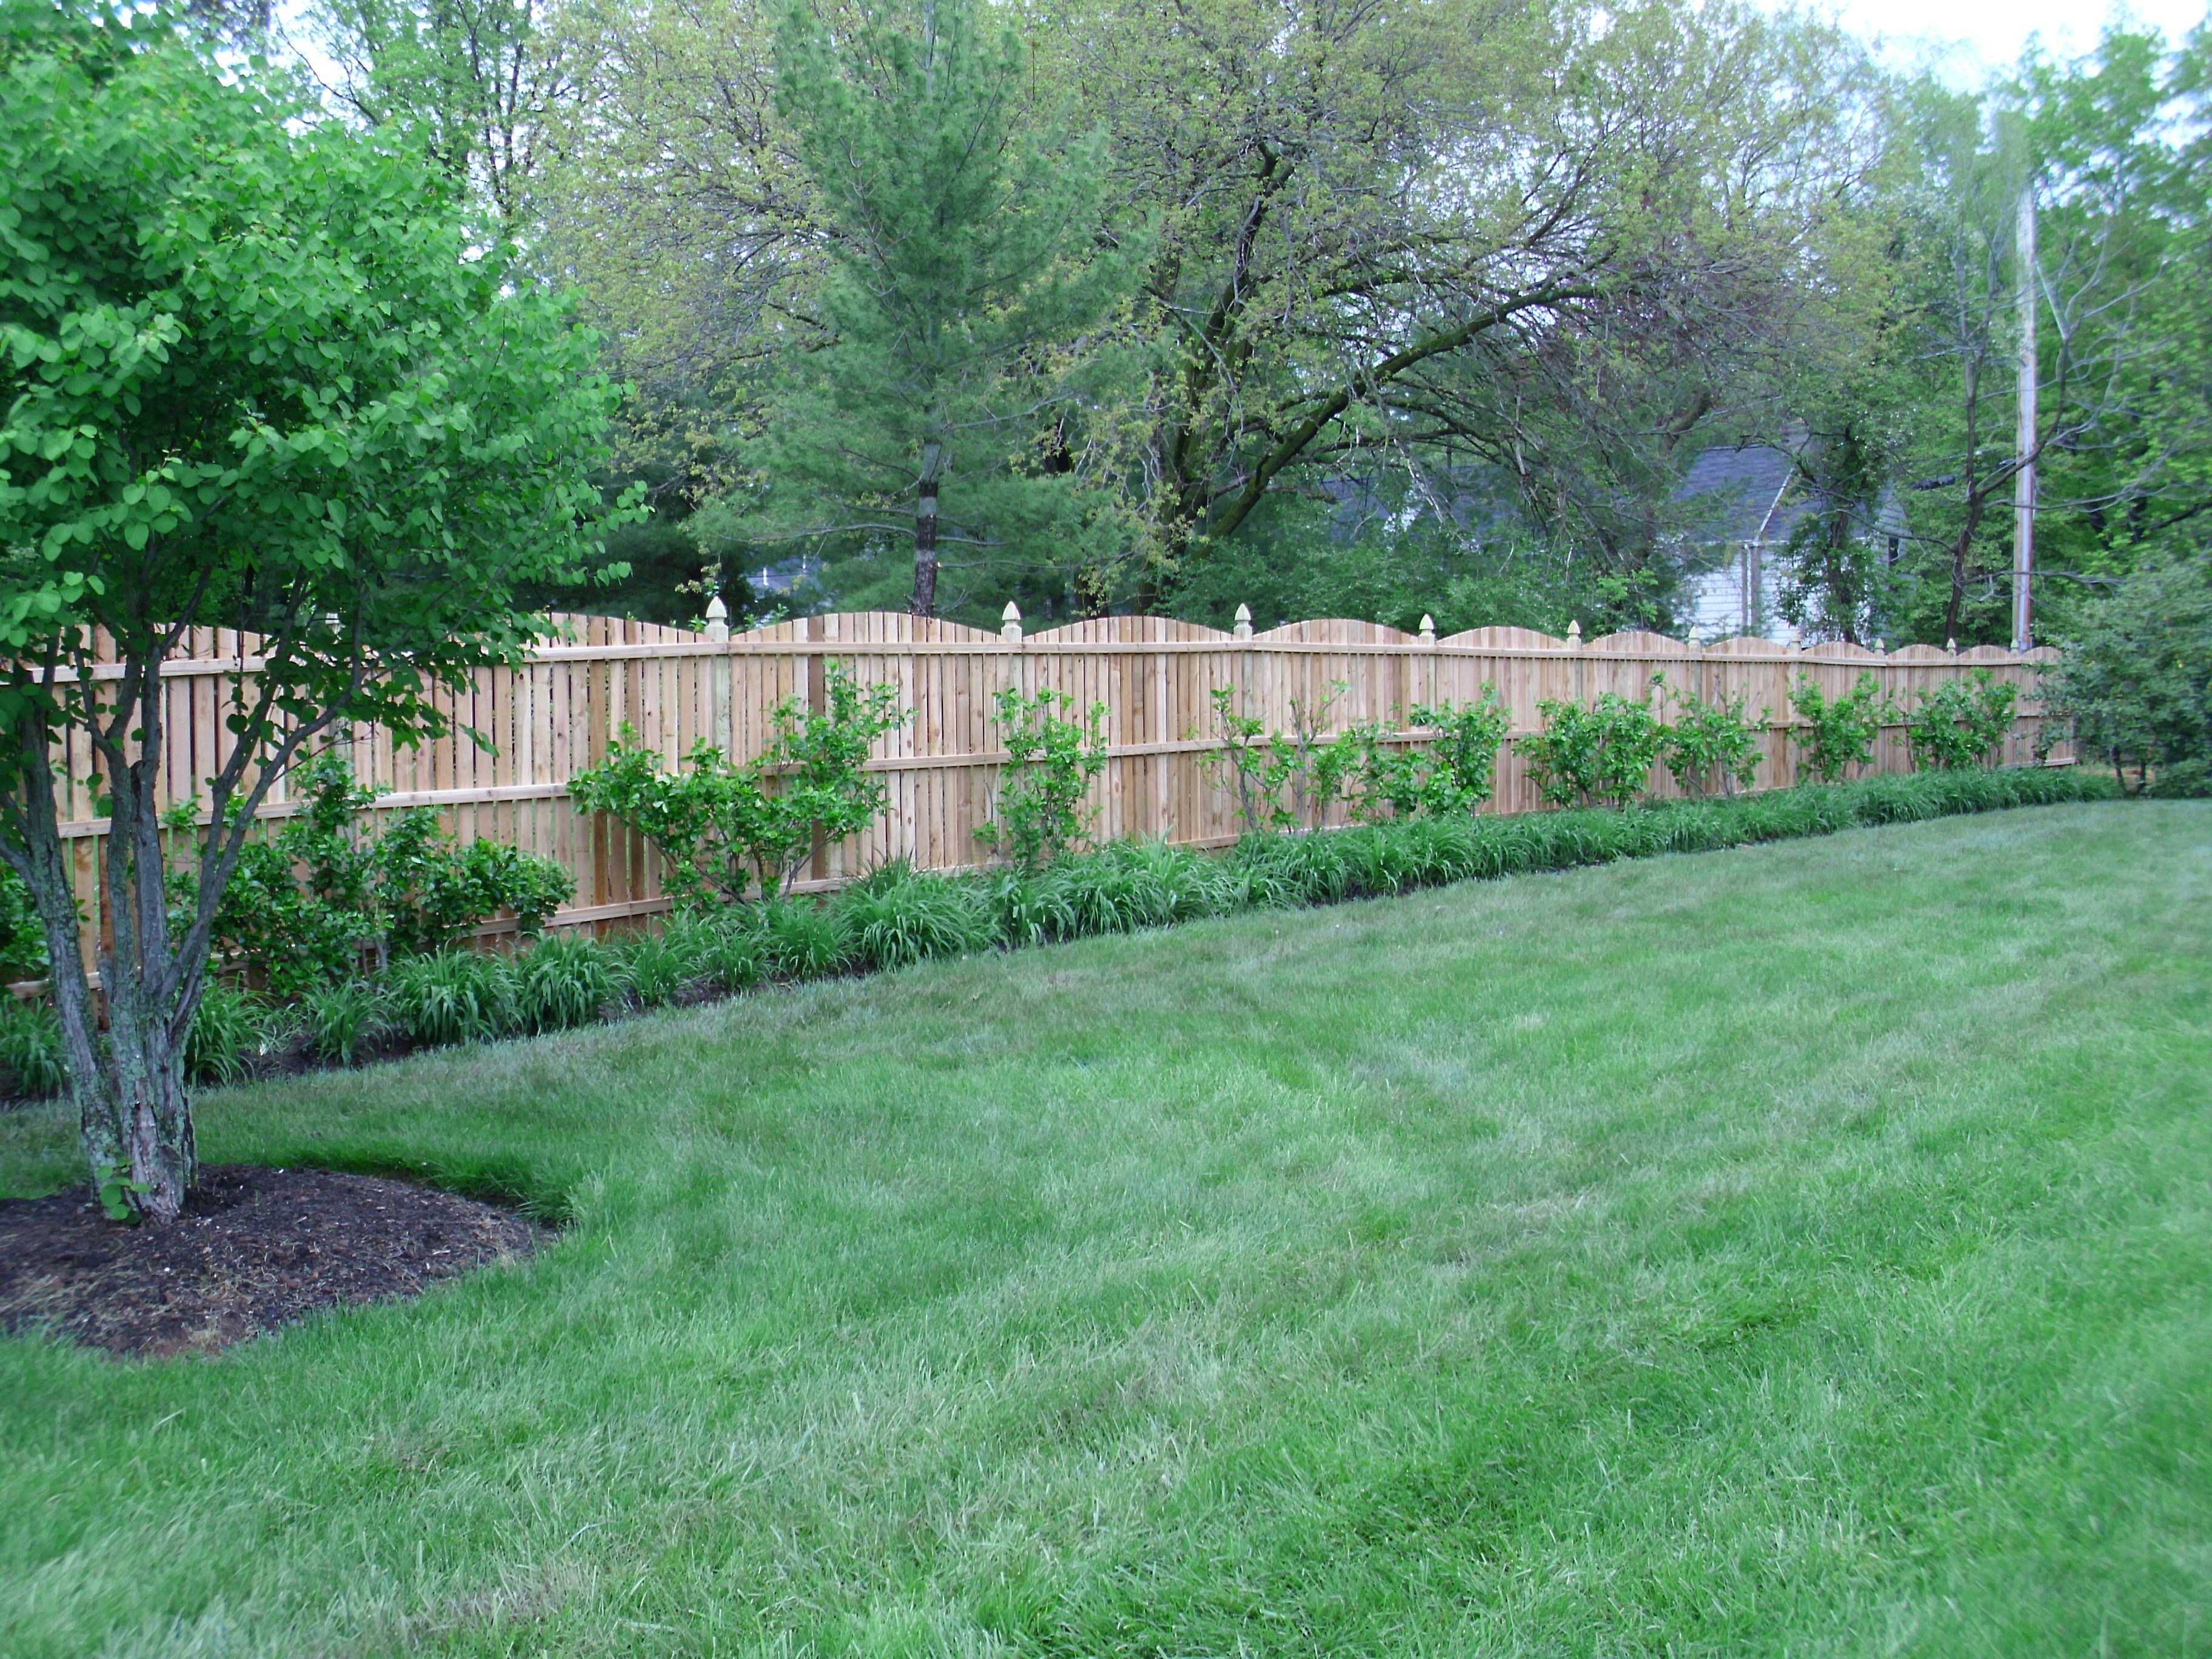 Convex Spaced Picket Fence With French Gothic Top Posts In